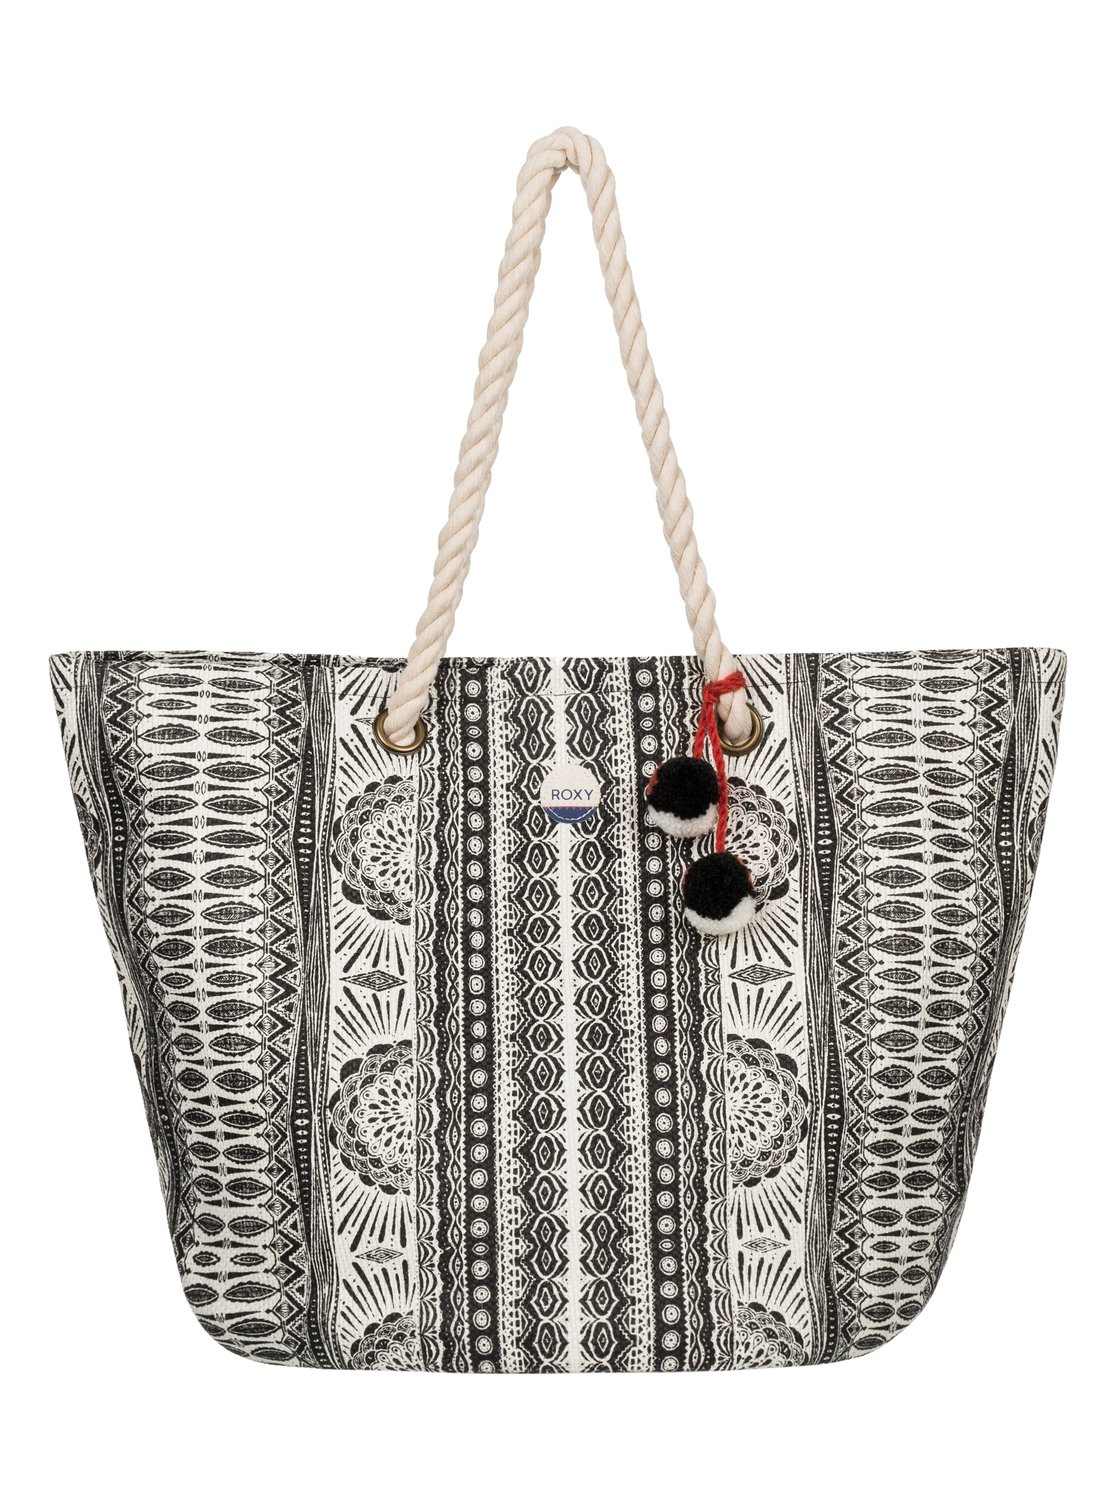 Sun Seeker Straw Beach Bag 889351590084 | Roxy